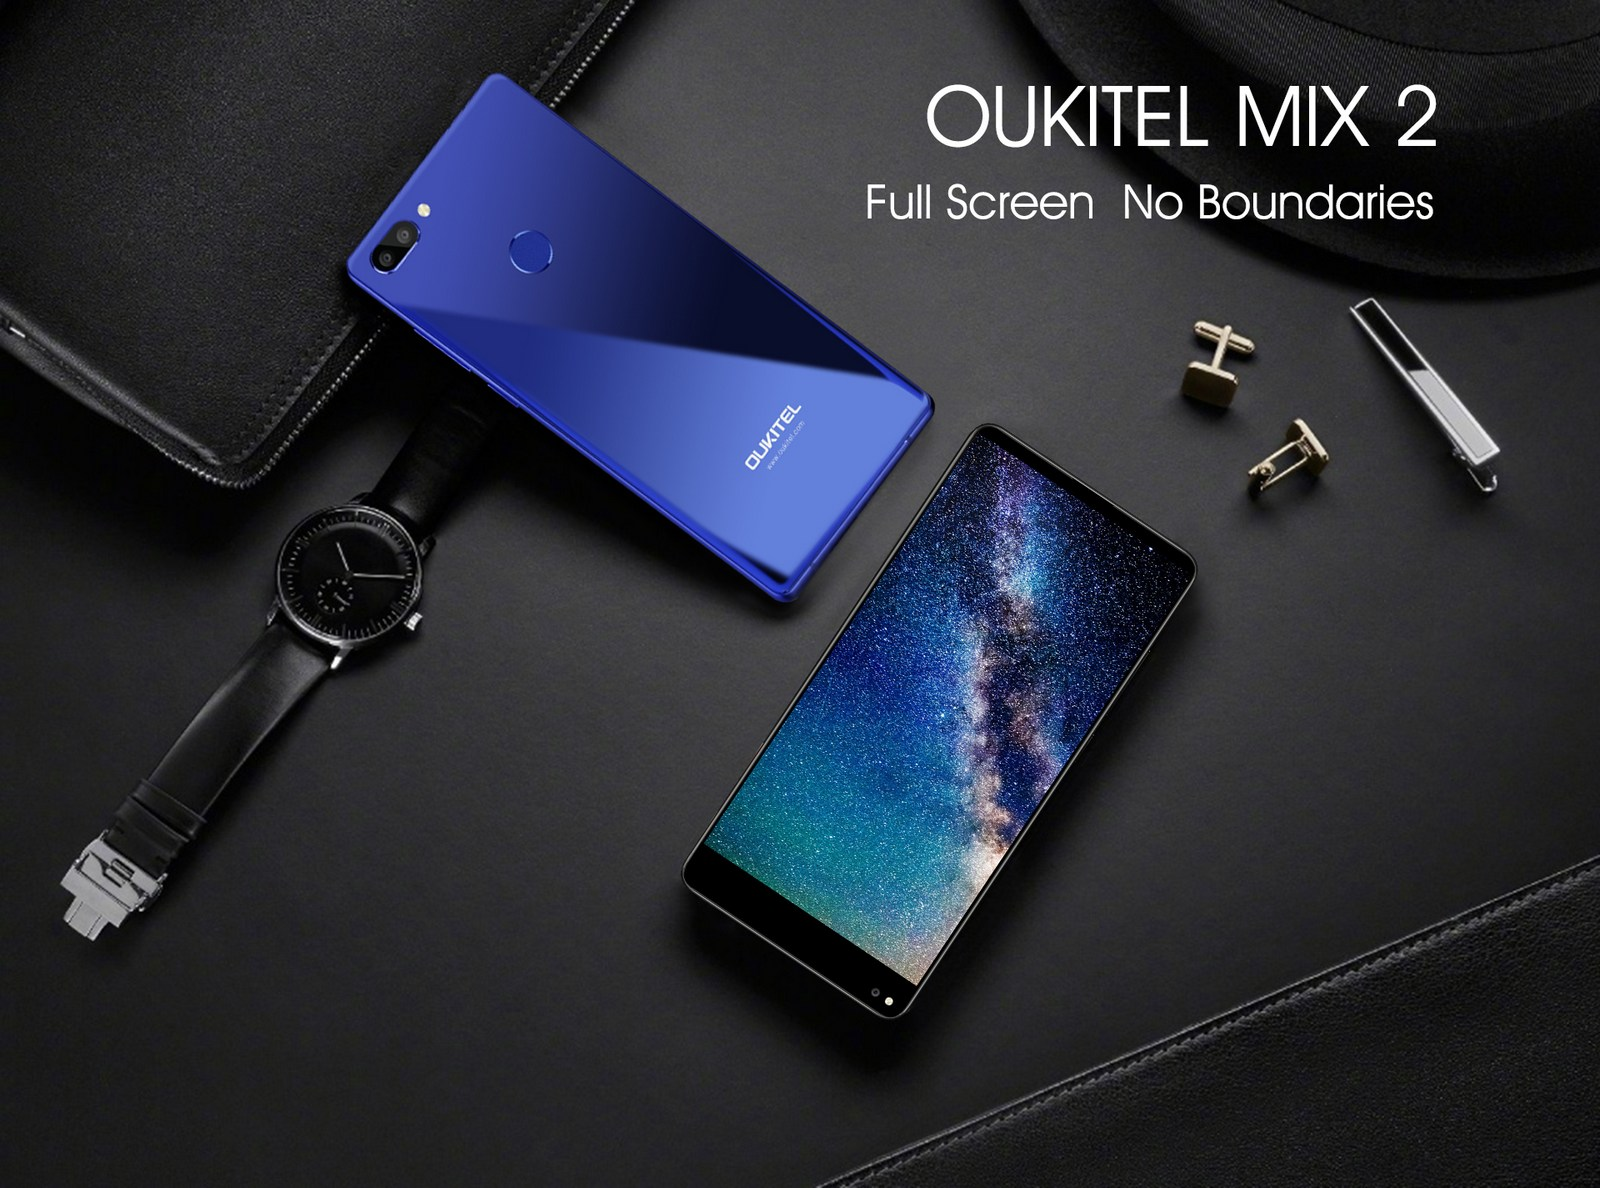 OUKITEL-Mix-2-Intro.jpg